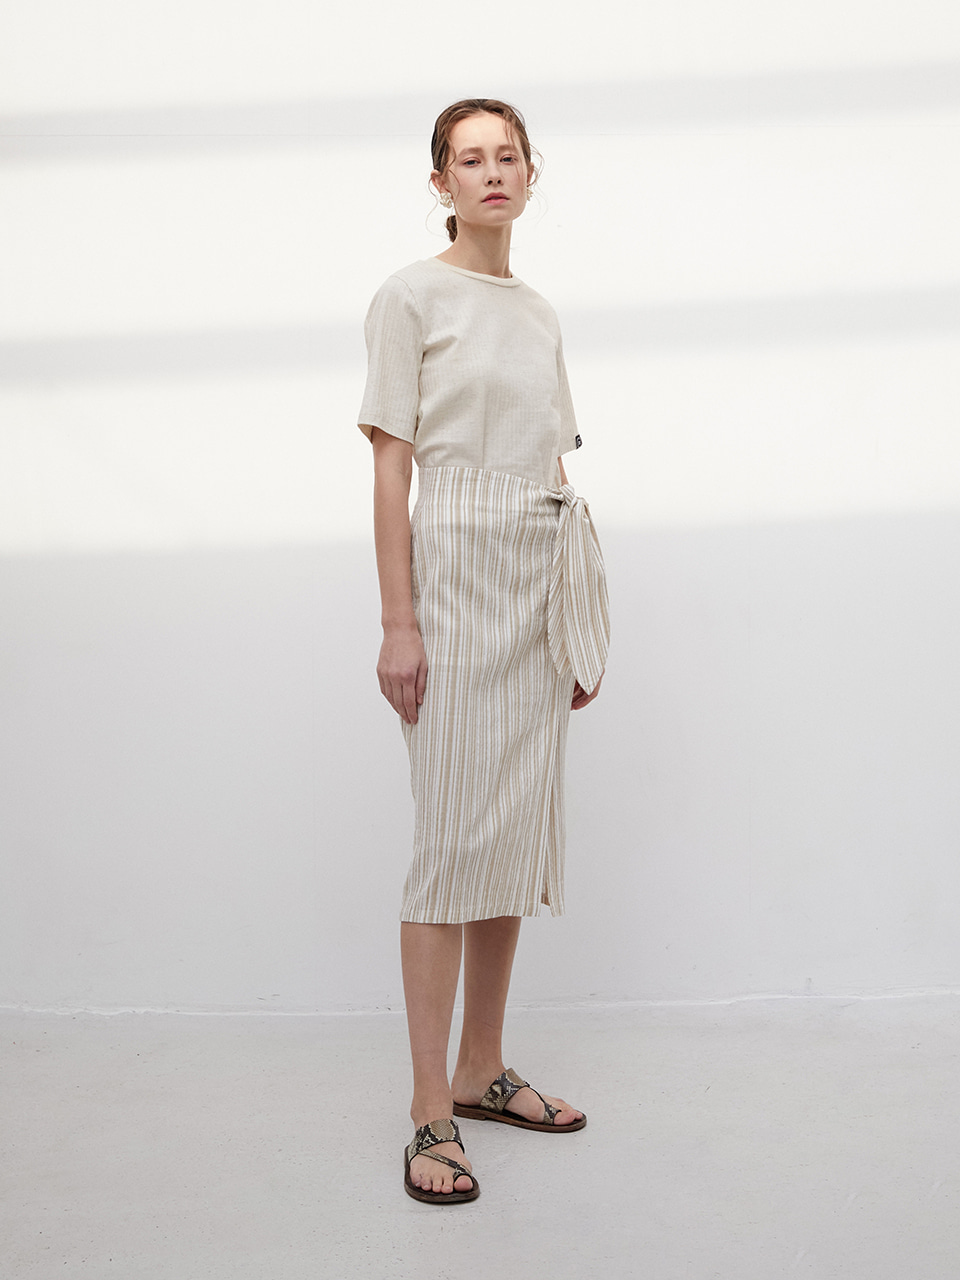 3R Premiun Modal Stripe Twist Ribbon Skirt - Ivory